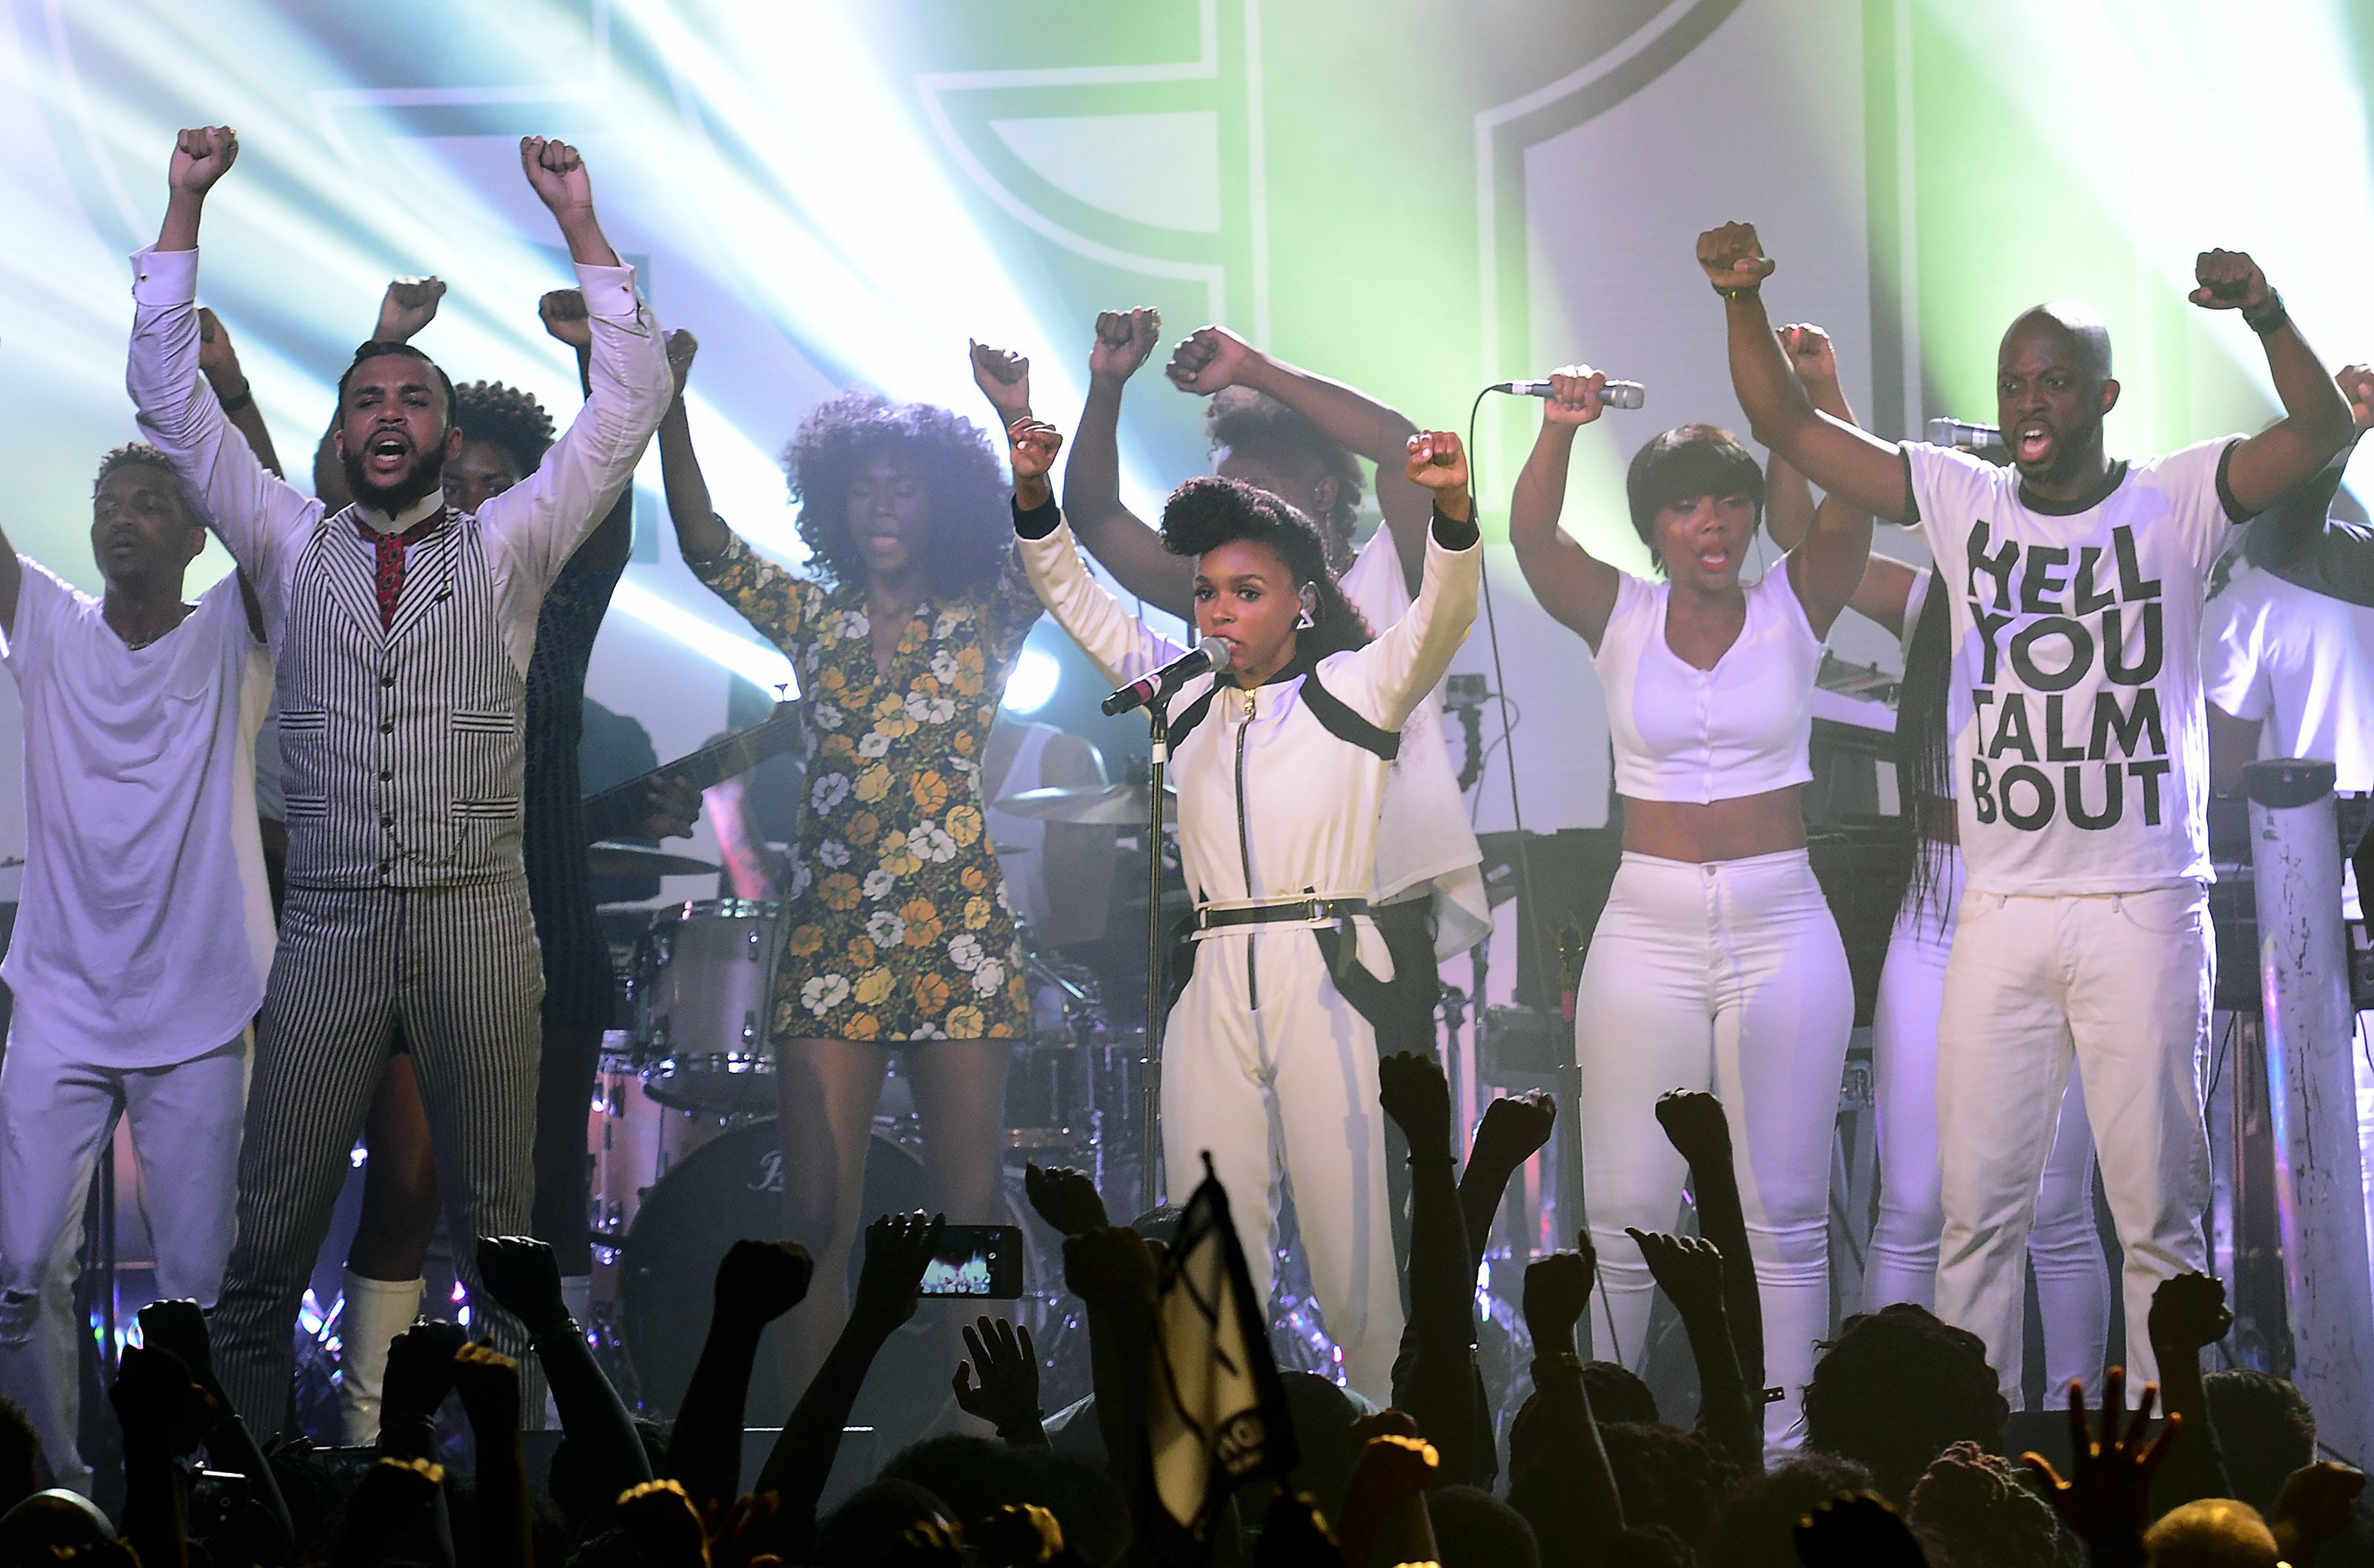 Janelle Monae in concert at the Concord Music Hall, Chicago, America - 18 Aug 2015